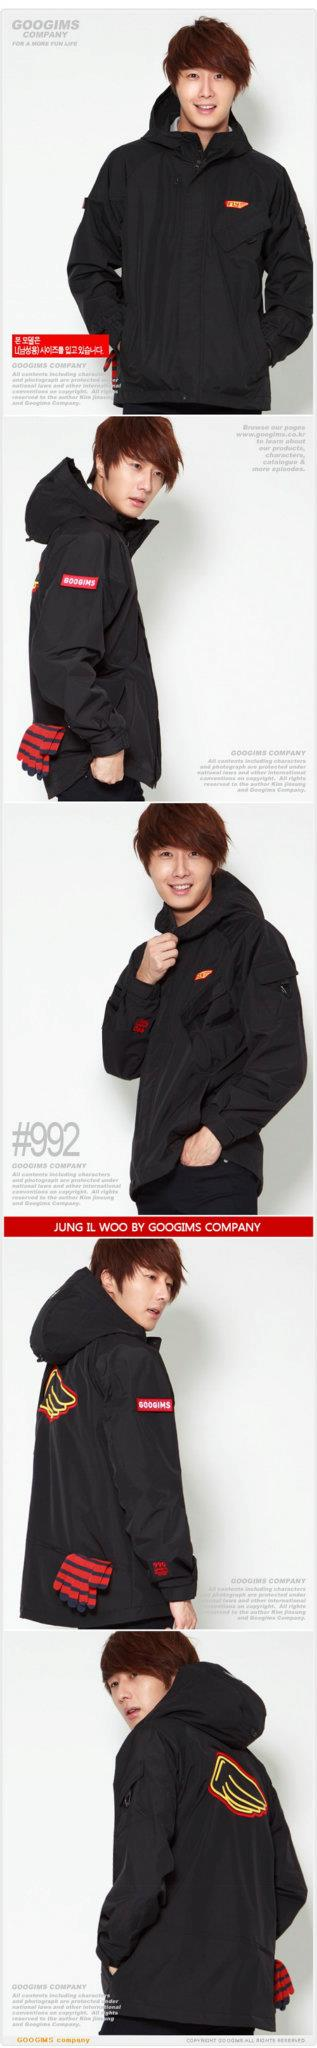 2011 10 Jung II-woo for Googims. Part 3 00001